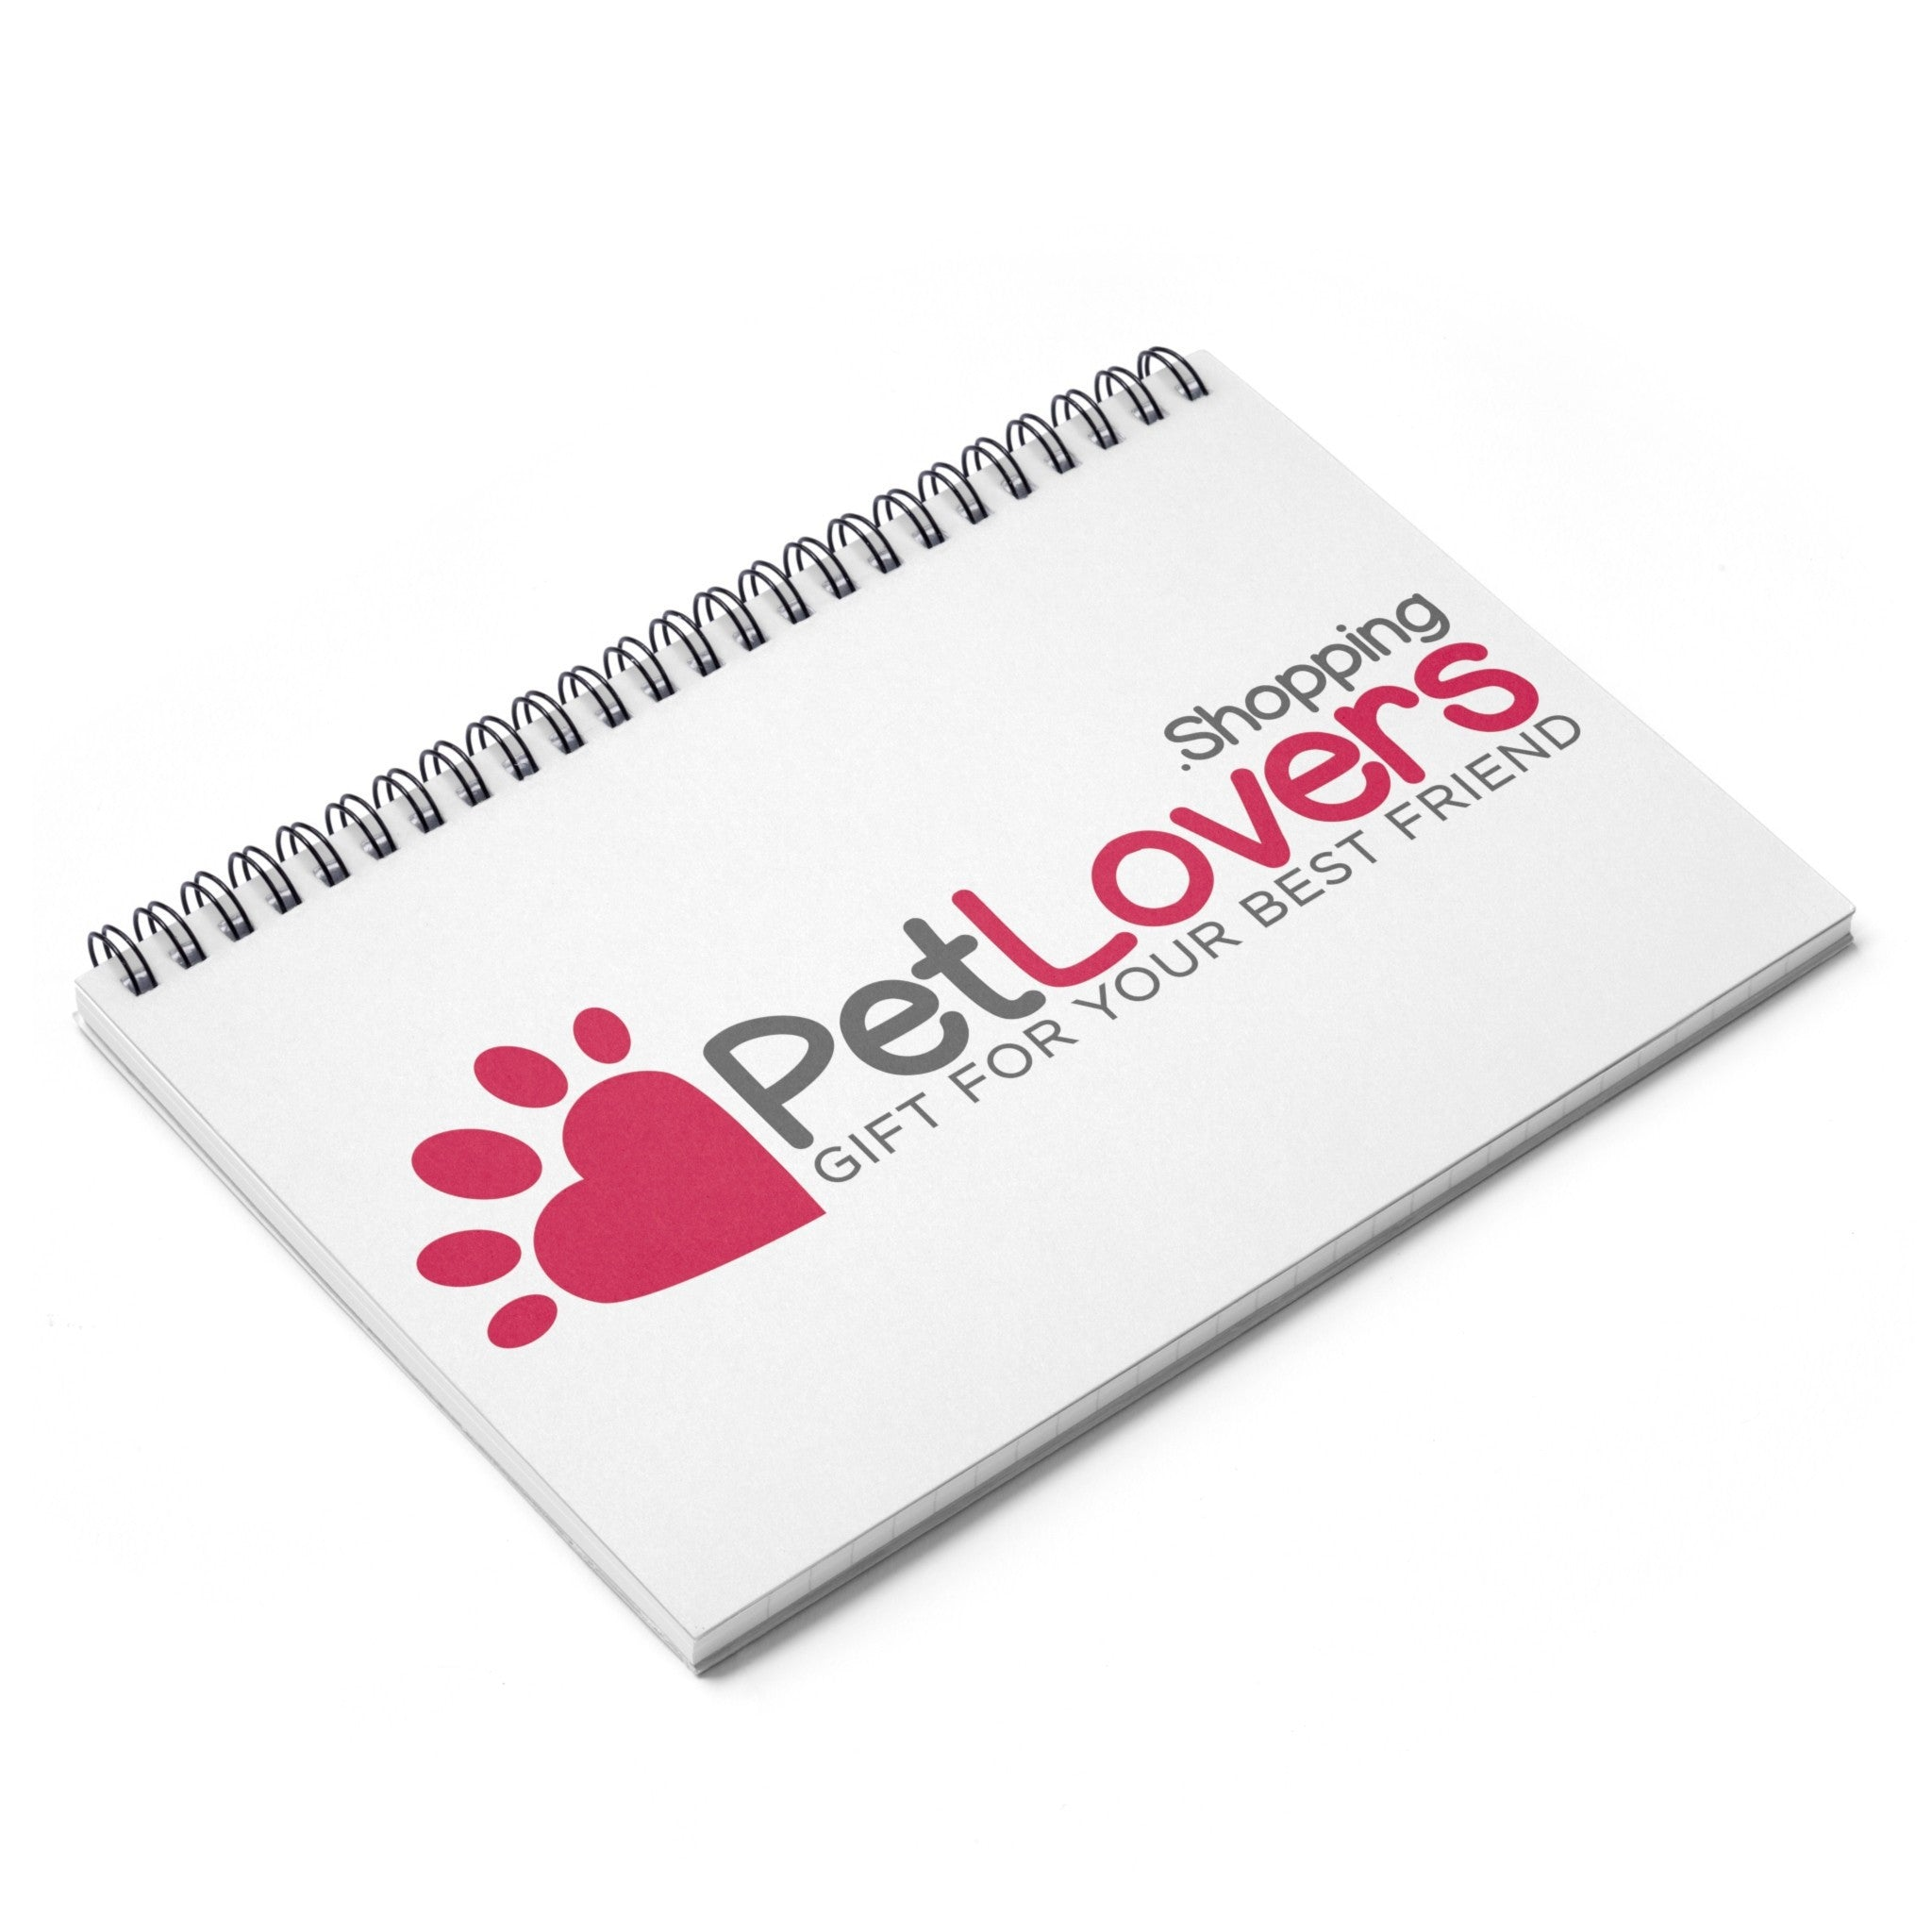 PetLovers - Spiral Notebook - Ruled Line